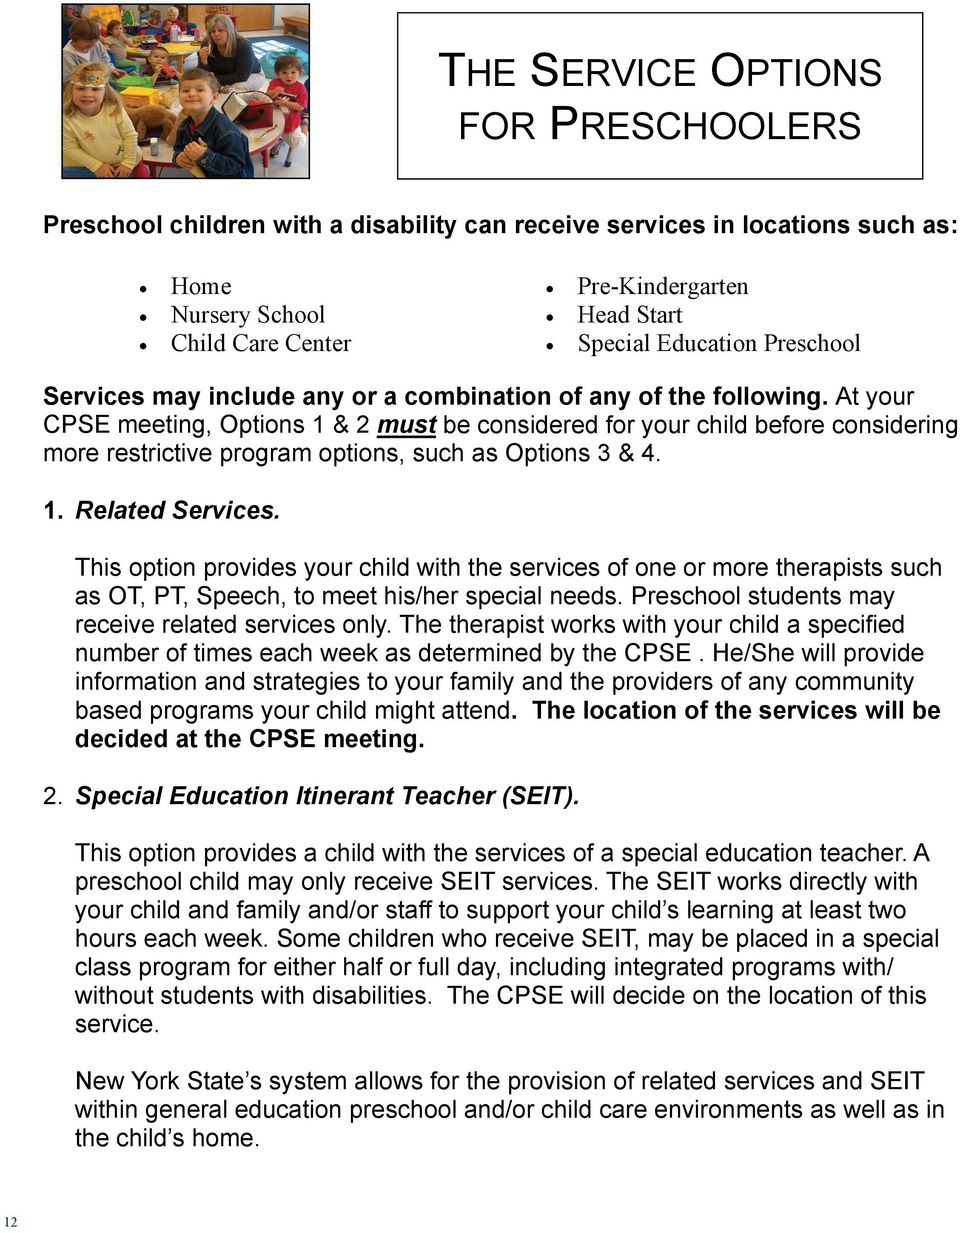 At your CPSE meeting, Options 1 & 2 must be considered for your child before considering more restrictive program options, such as Options 3 & 4. 1. Related Services.